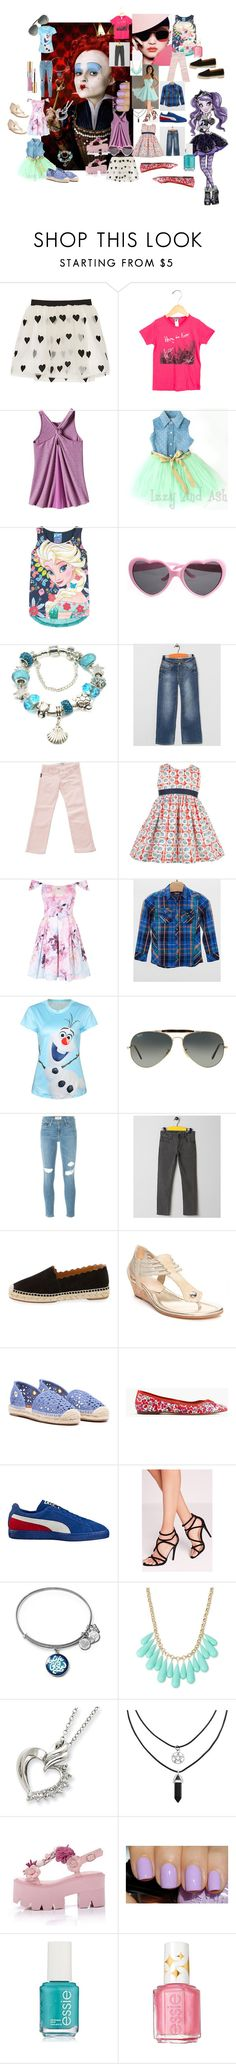 """""""YOUNG AND FREE"""" by trinitashi on Polyvore featuring Burton, Alice + Olivia, Bonpoint, Patagonia, Request Jeans, Giorgio Armani, Jane Norman, BKE, Disney and Ray-Ban"""